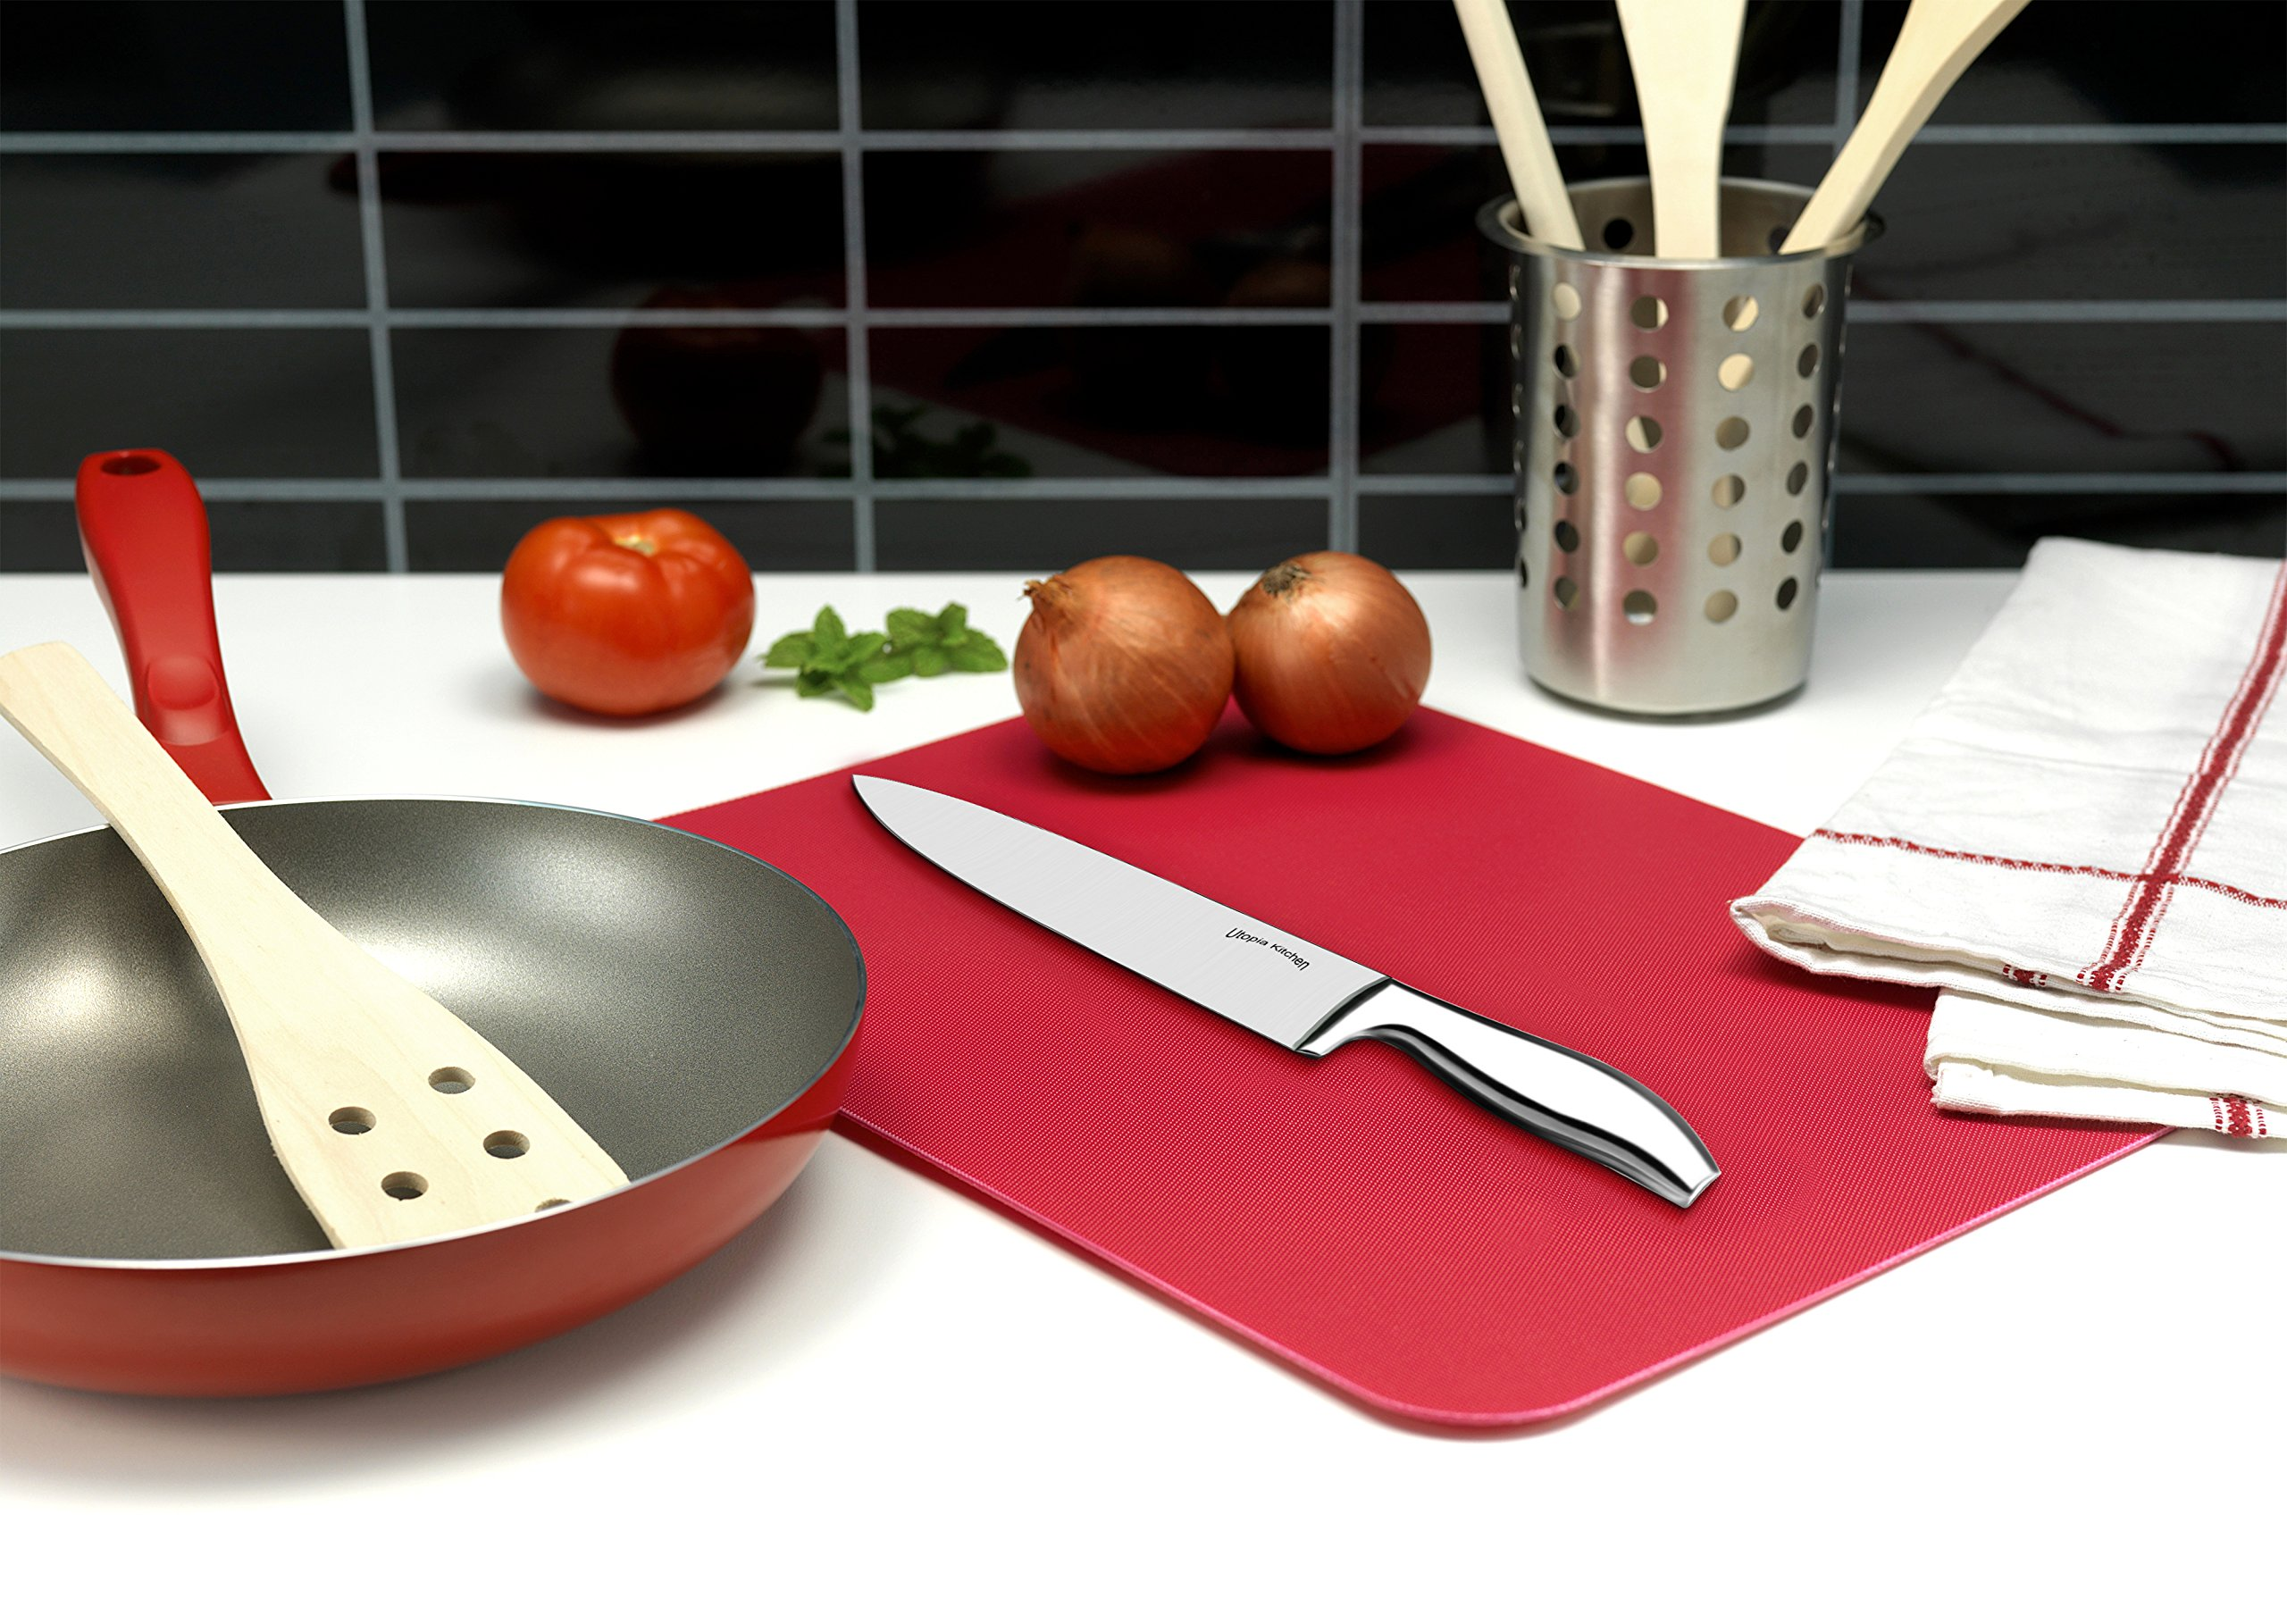 Utopia Kitchen Knife Set - 12 Pieces - Steel Handles Stainless Steel Knives with an Acrylic Stand by Utopia Kitchen (Image #3)